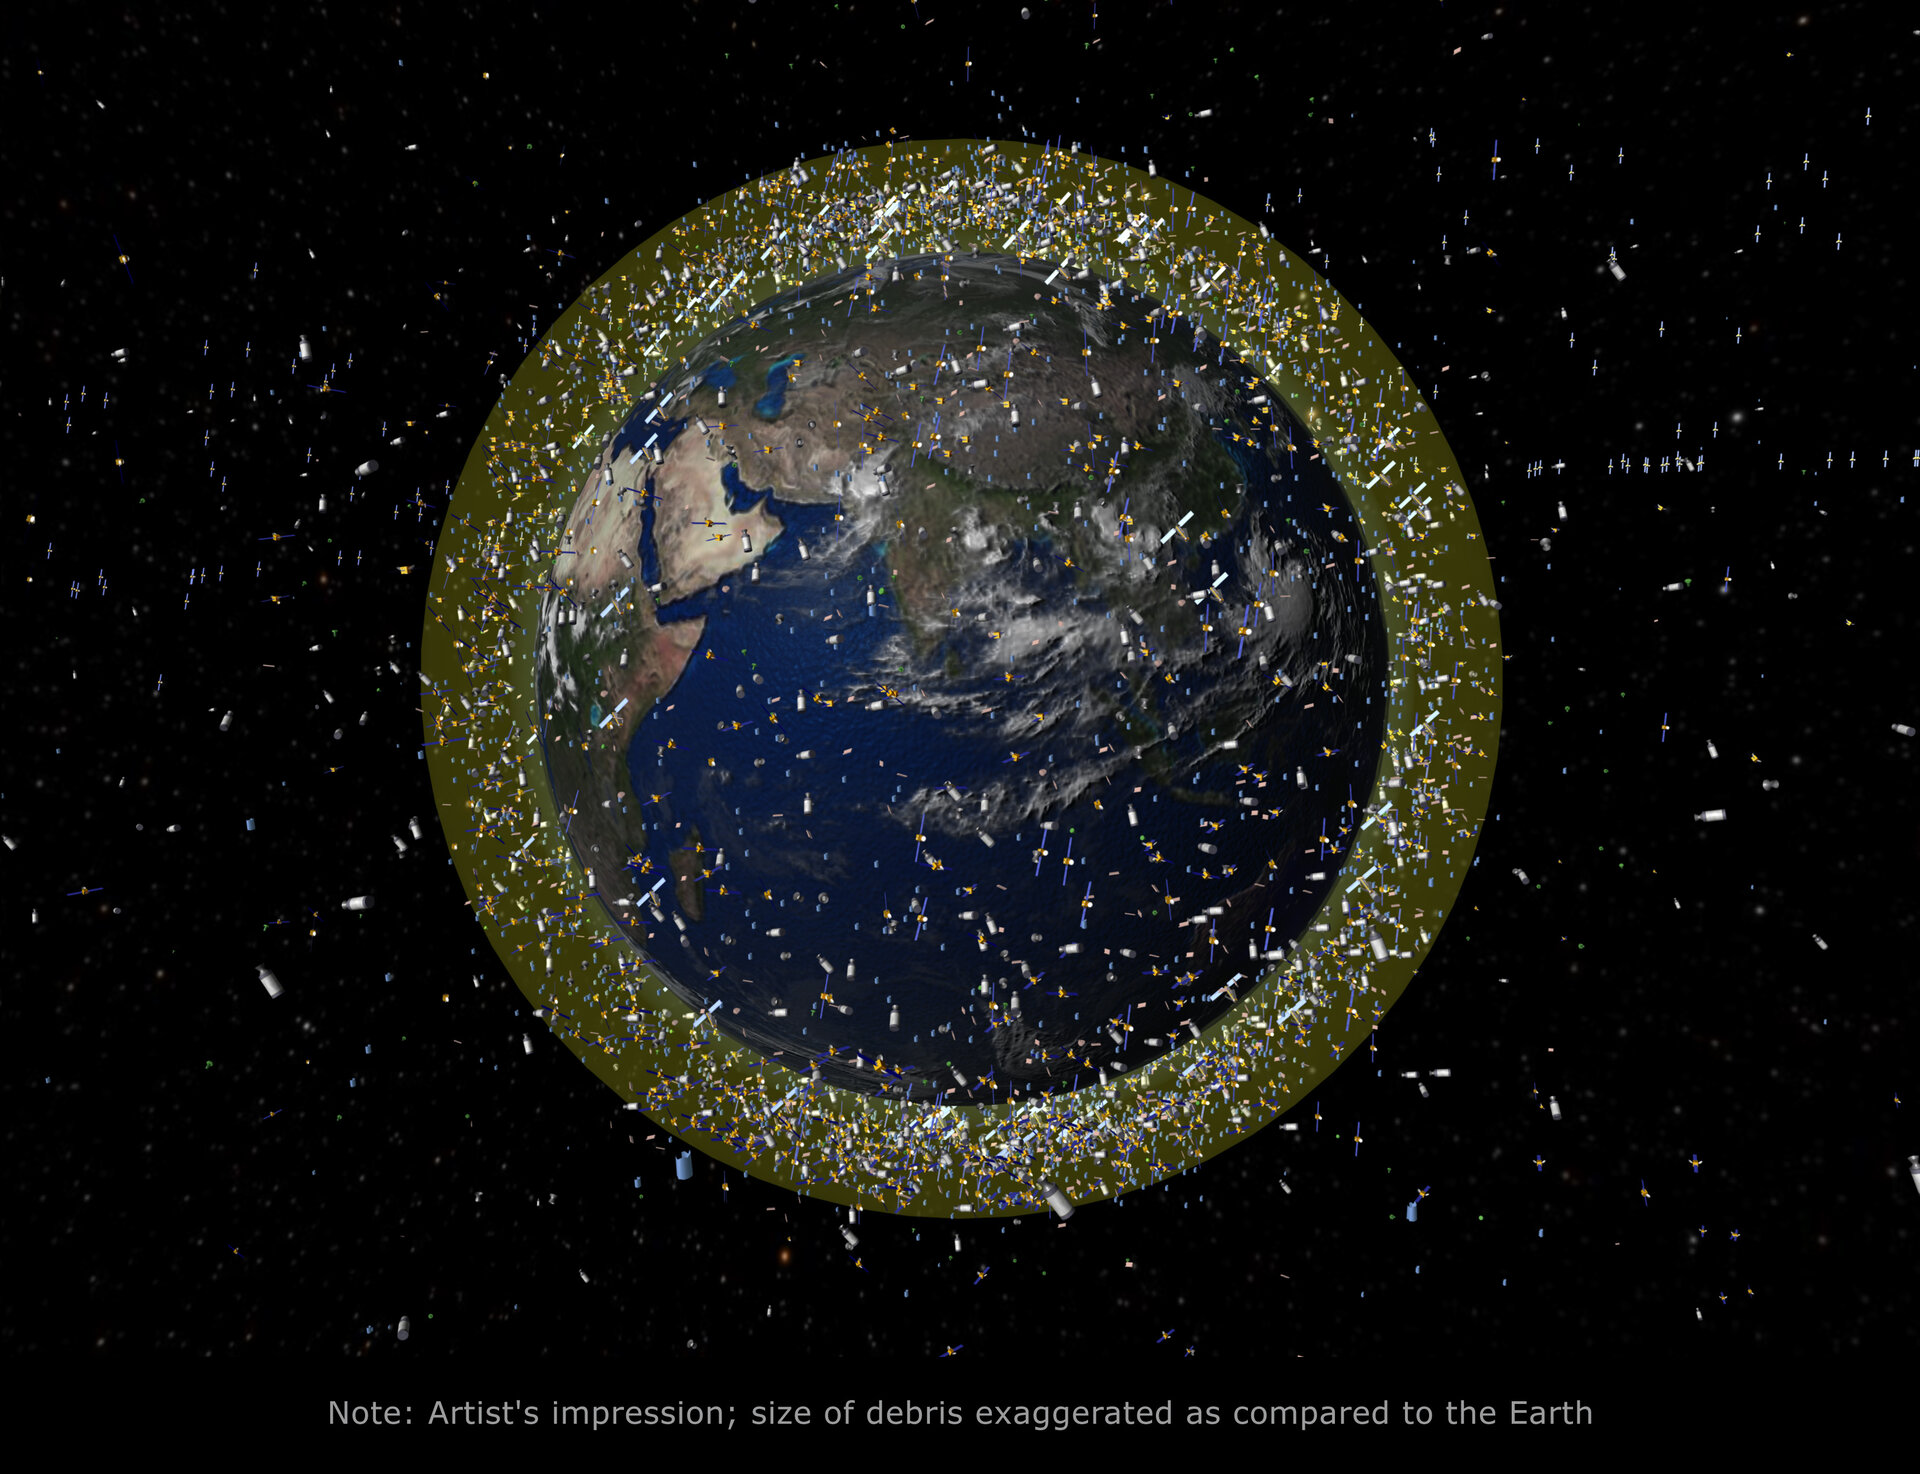 Debris objects in low-Earth orbit (LEO)